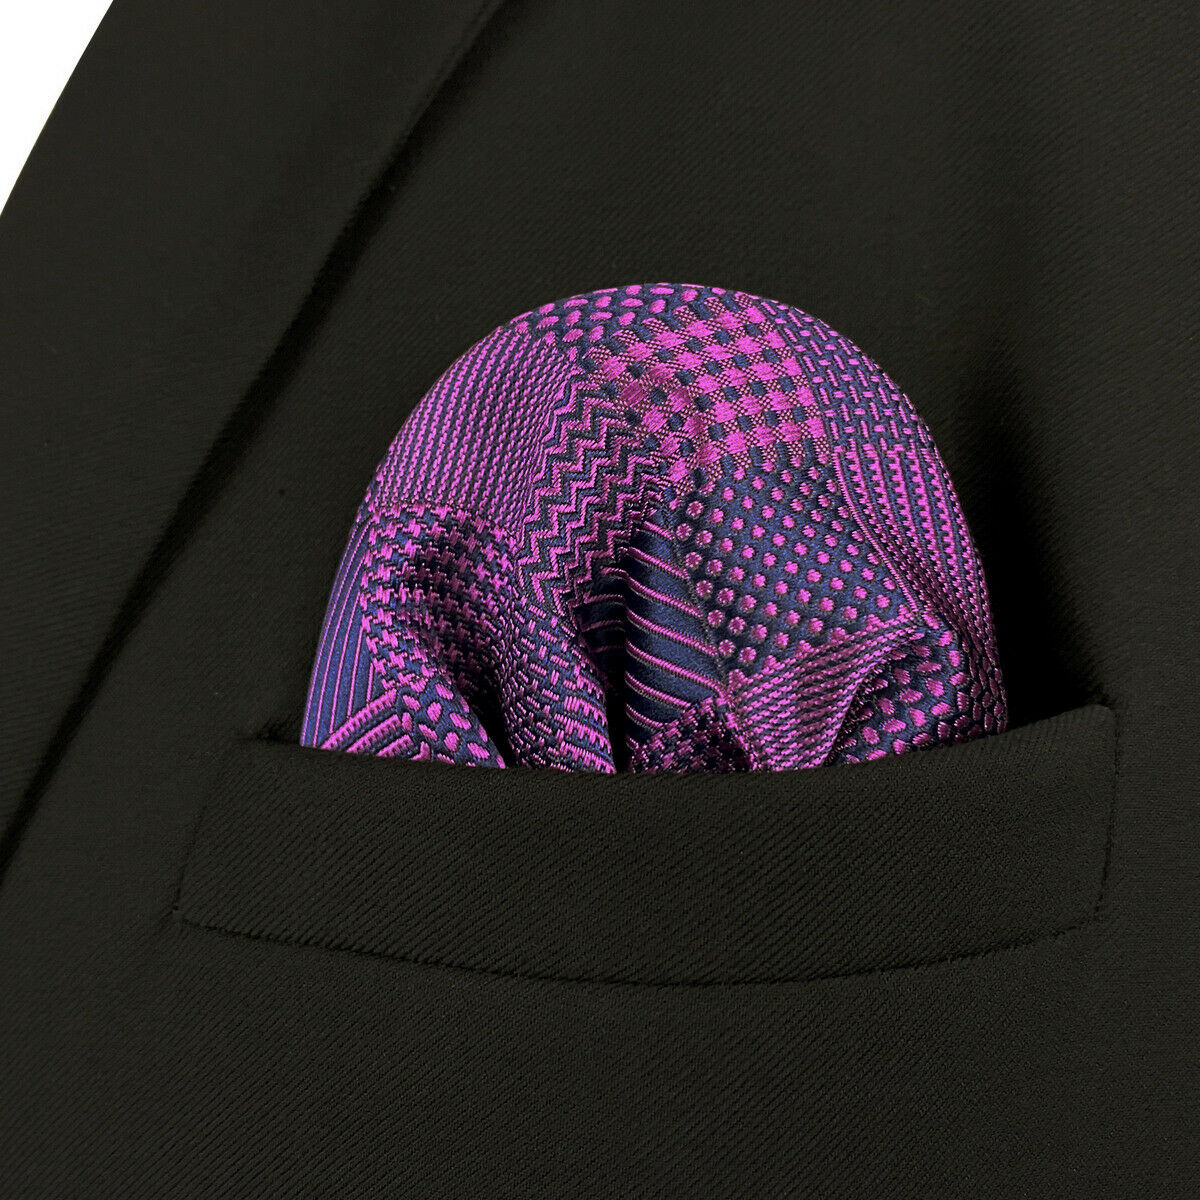 S&W SHLAX&WING Pocket Squares for Men Purple Checkered Wedding Luxury